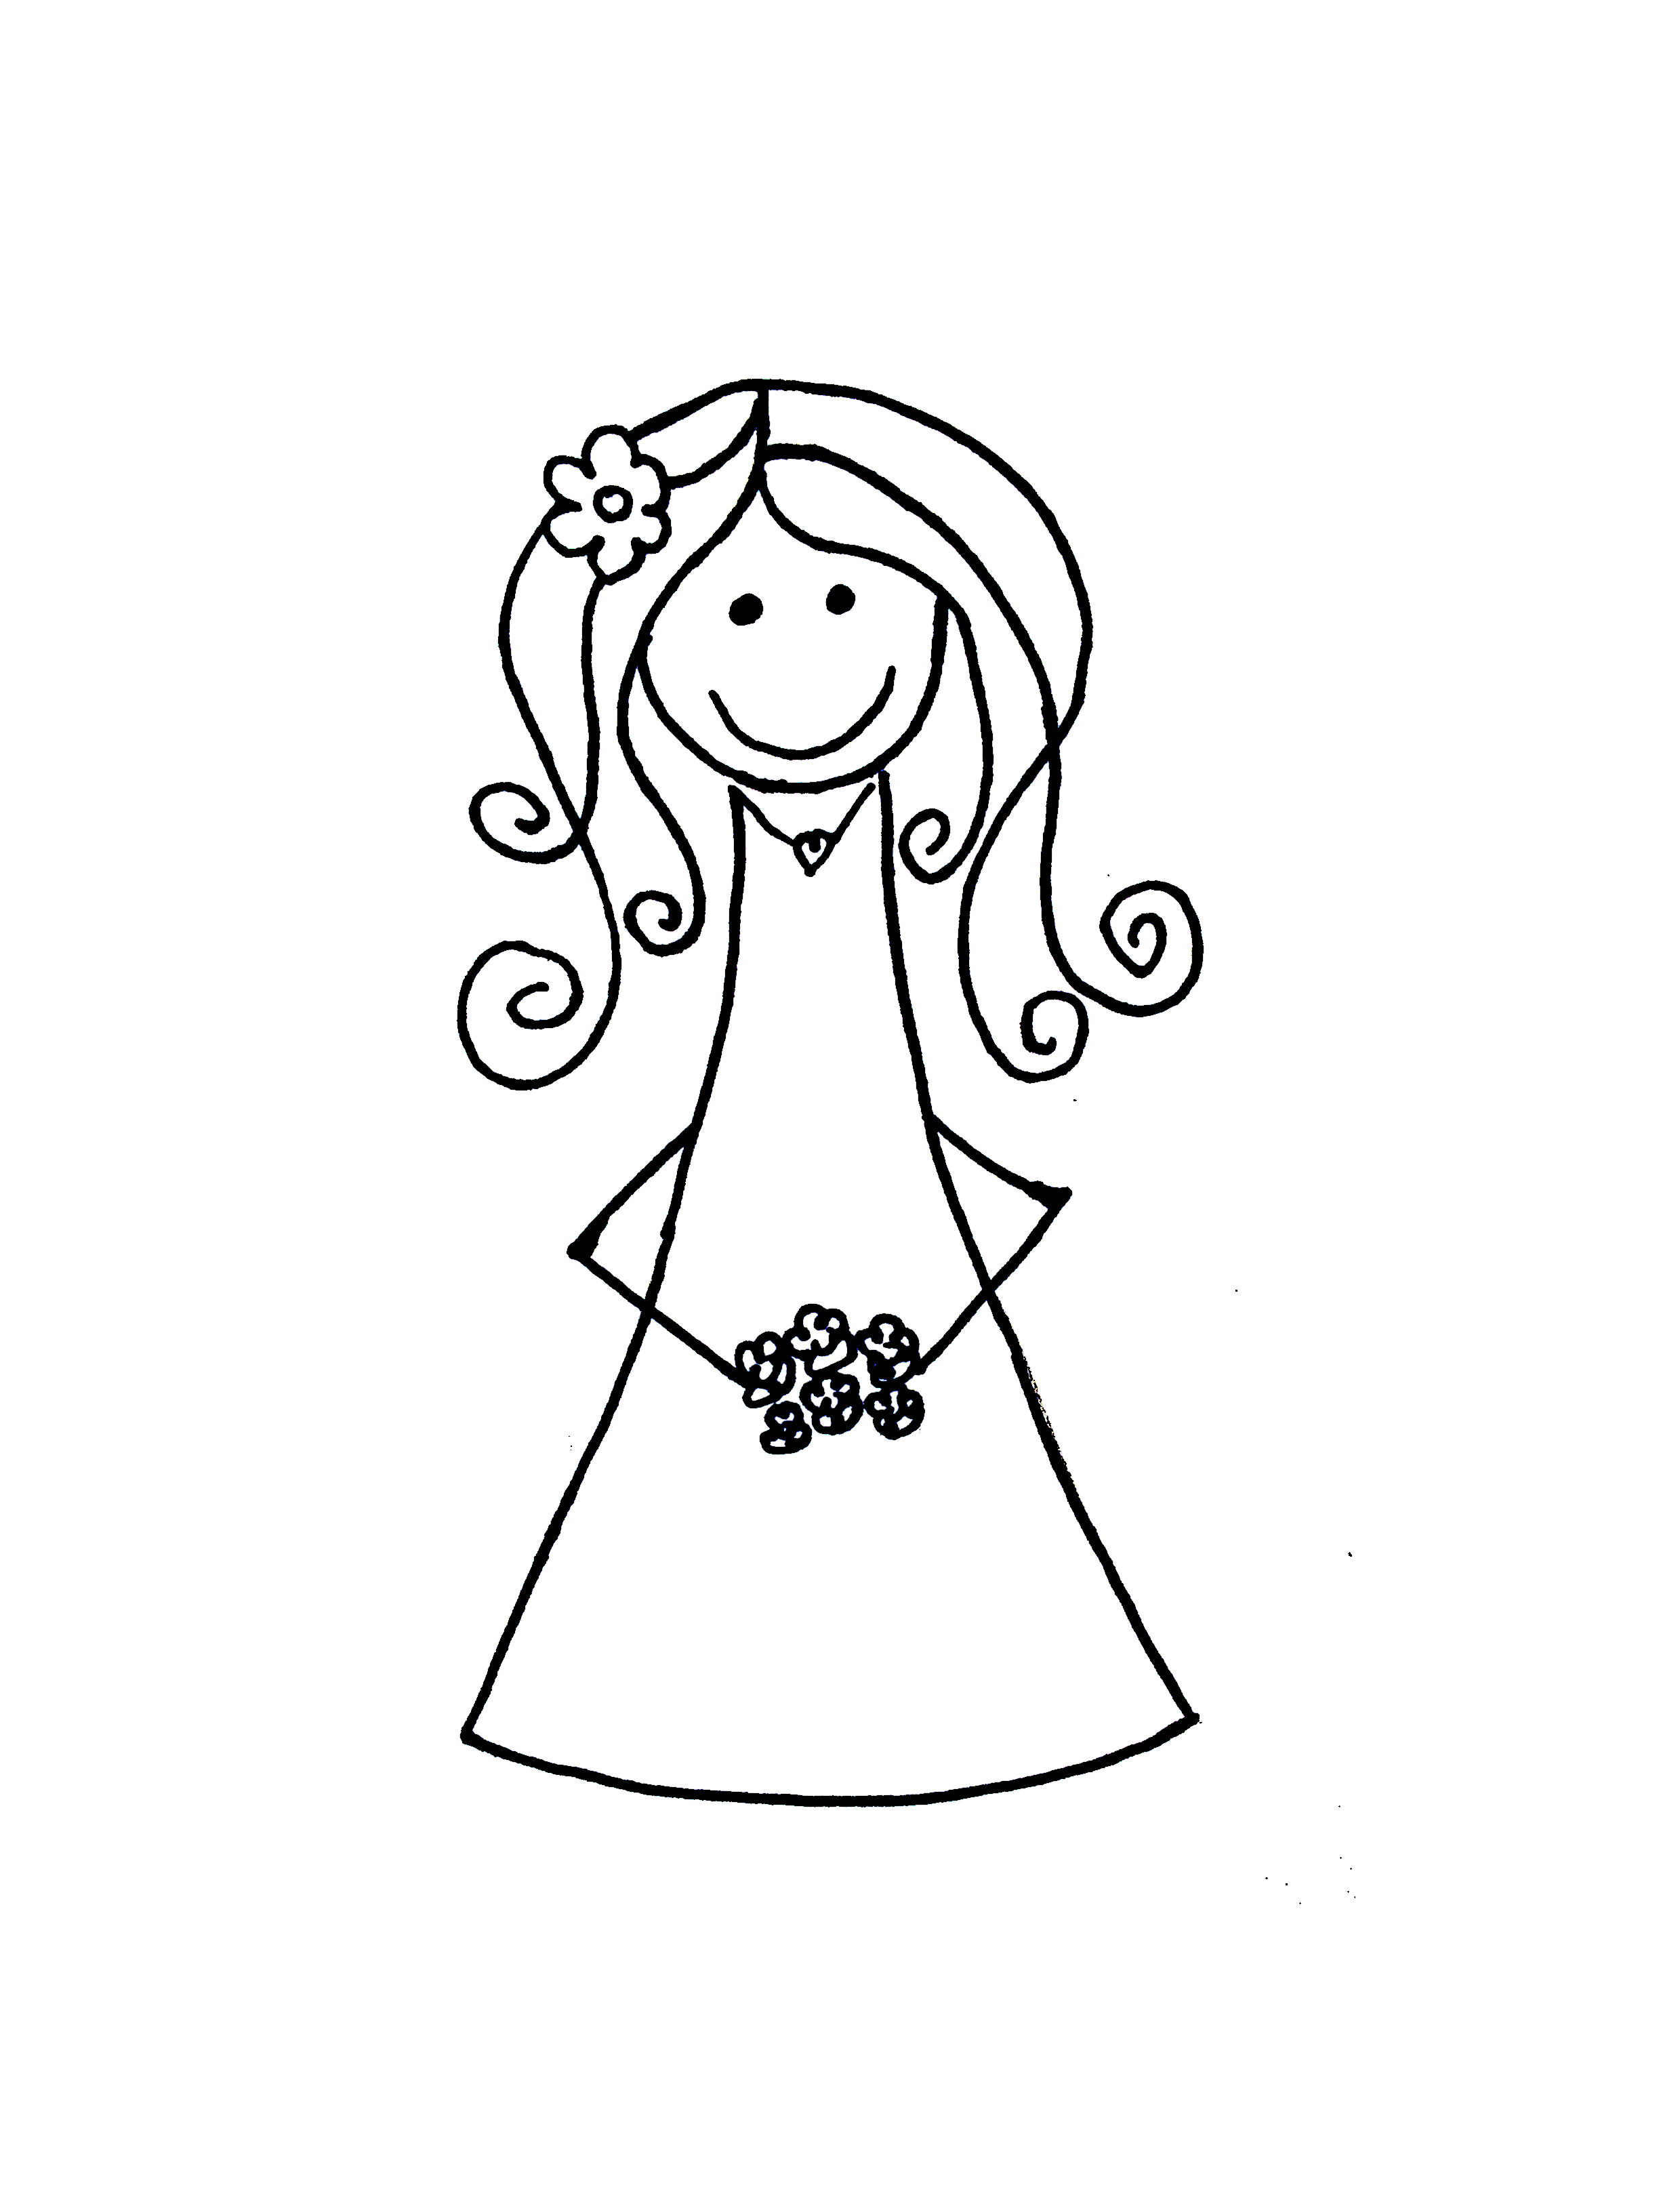 Bride And Groom Cartoon Clip Art.